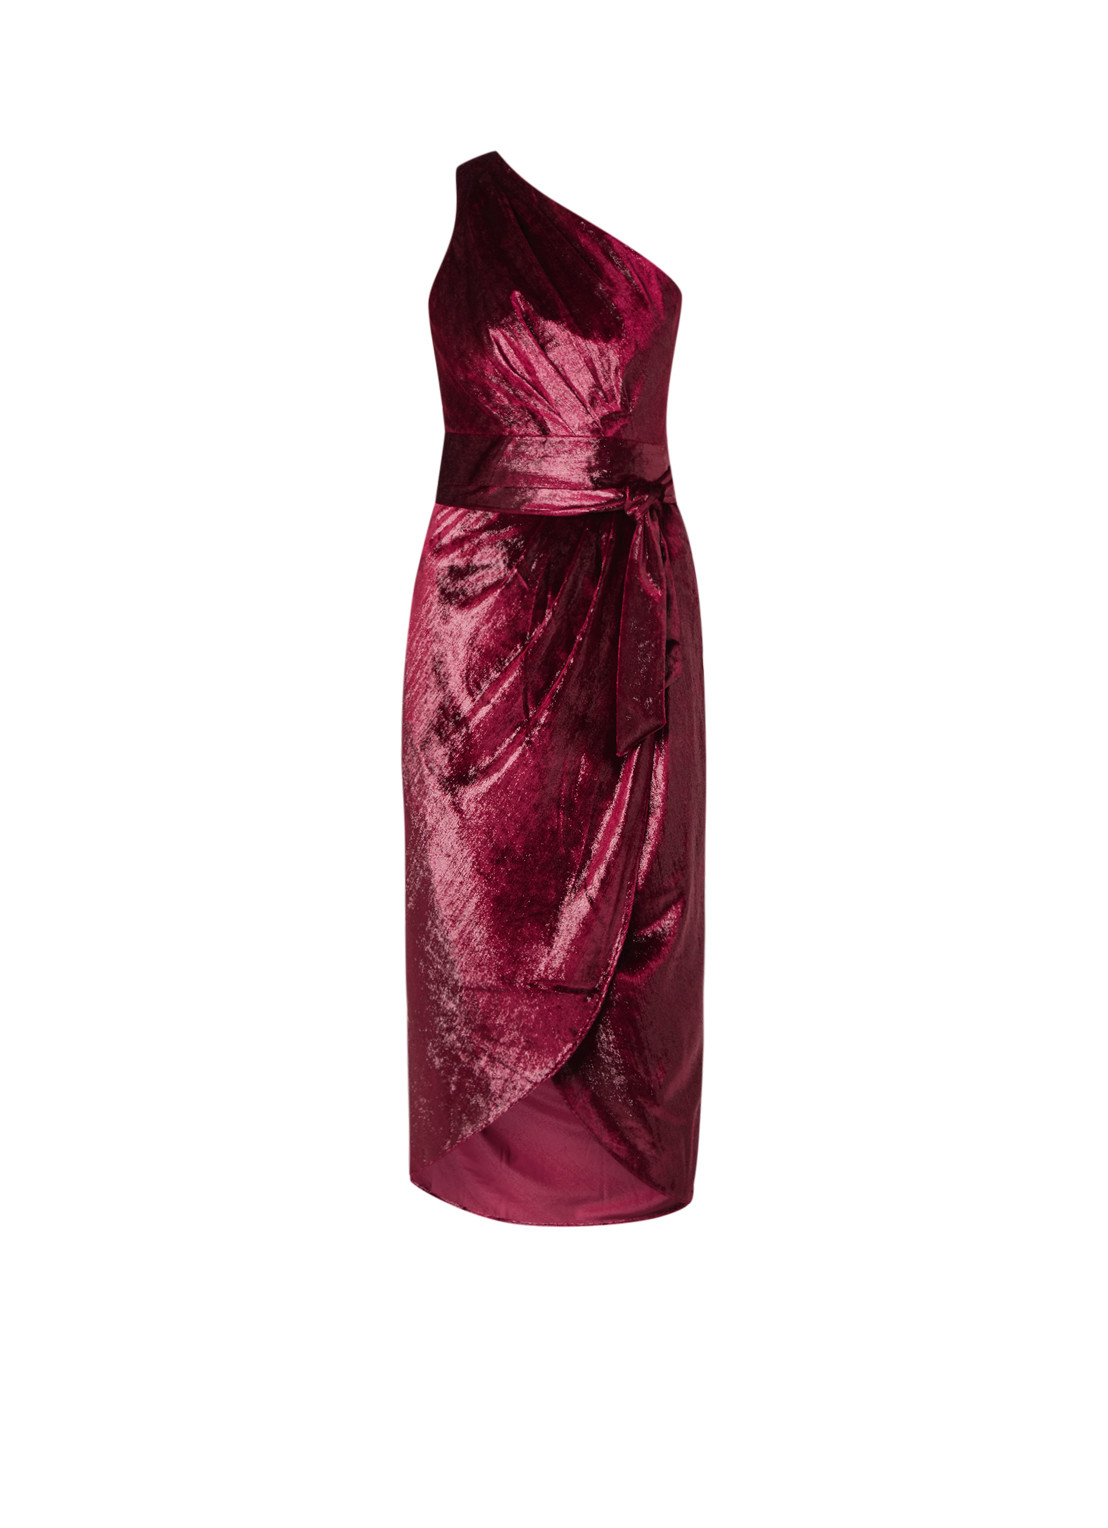 Ted Baker Abinaa one shoulder kokerjurk met strikceintuur bordeauxrood